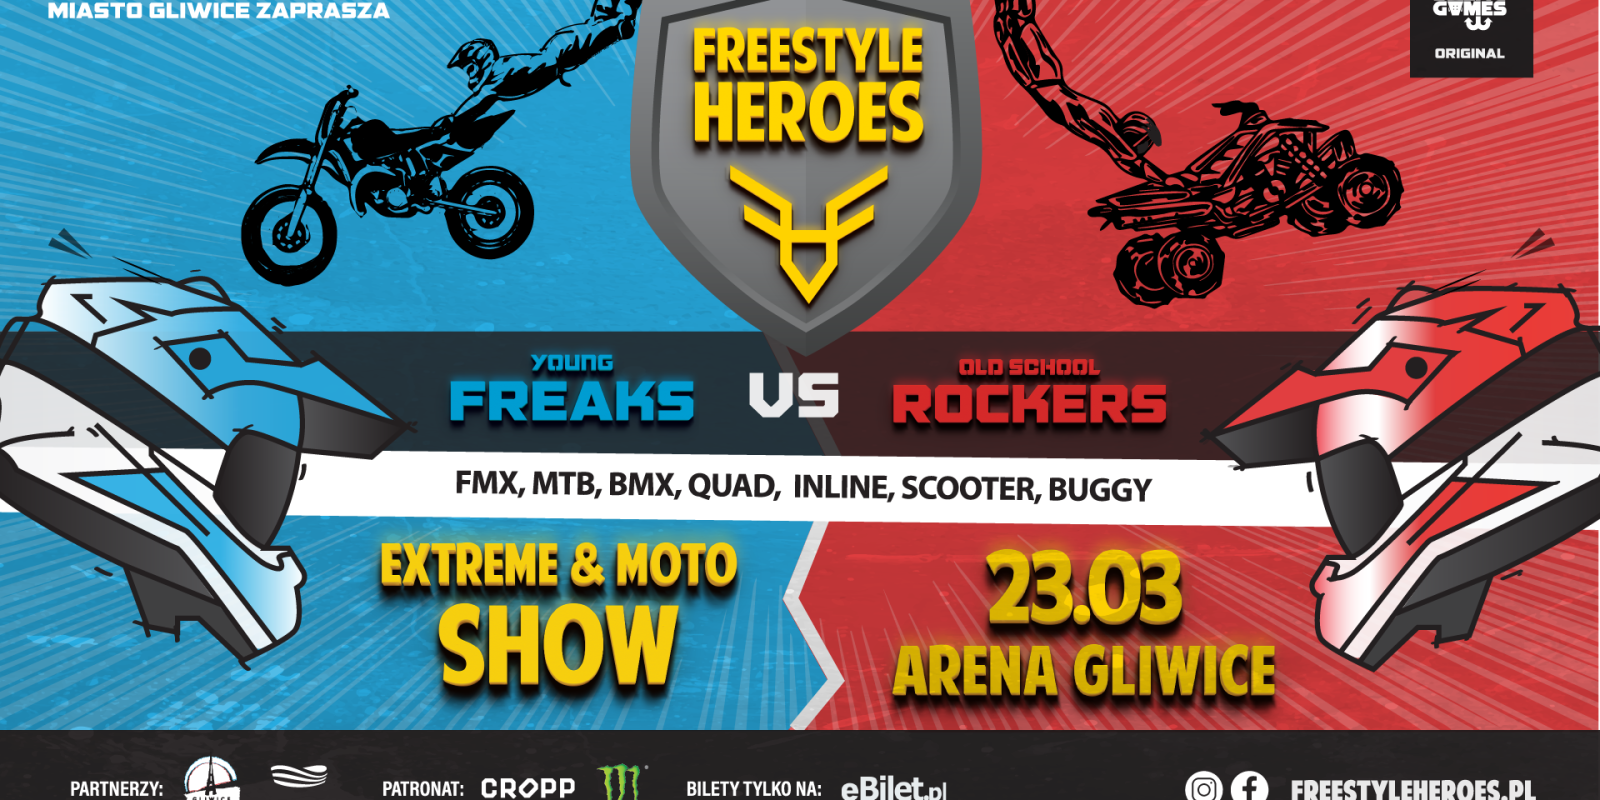 Posters of Freestyle Family event in Poland